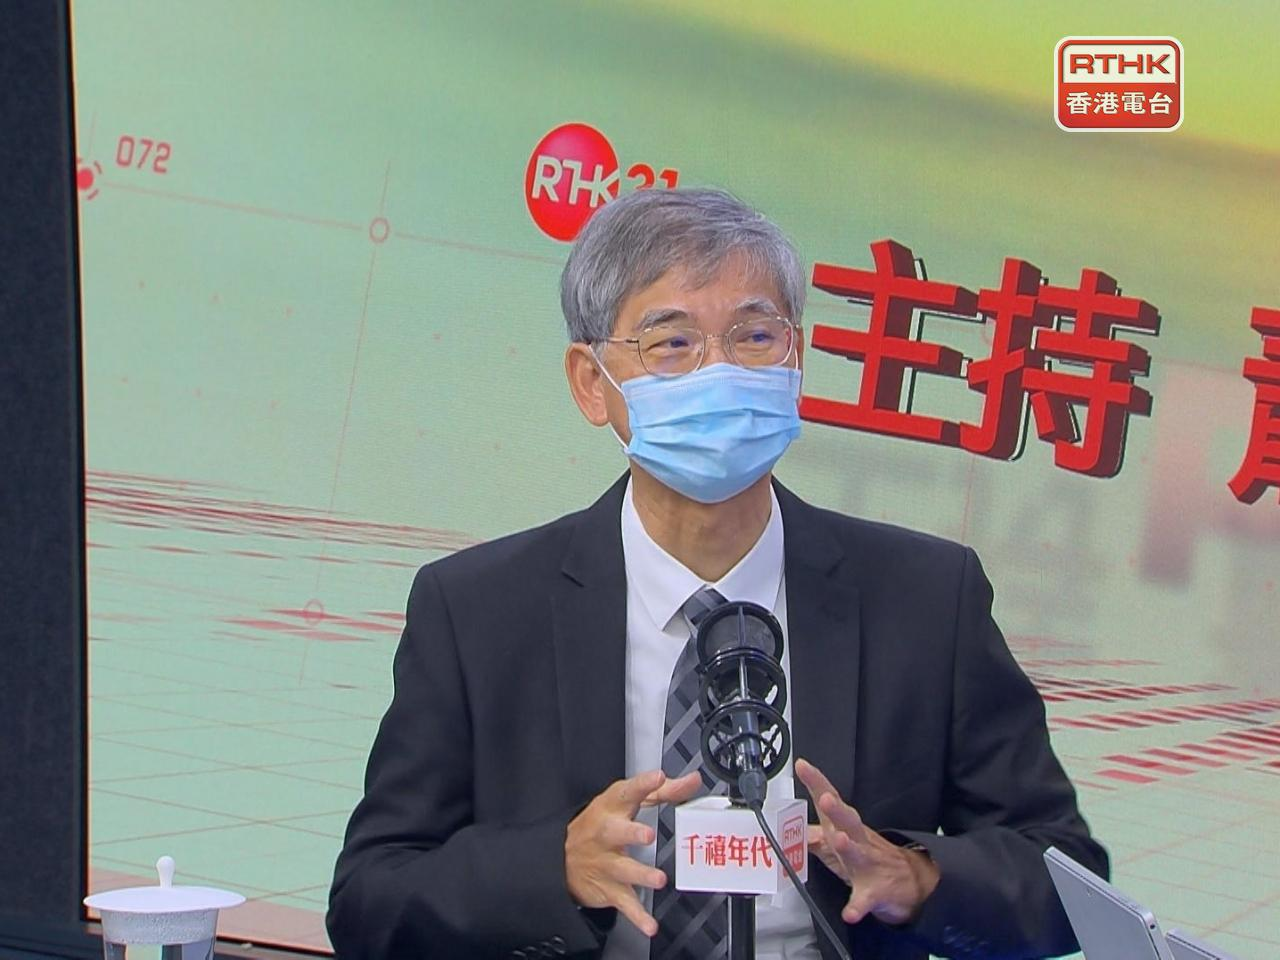 Law Chi-kwong says he expects a study on encouraging people to join the annuity plan will be completed by the end of the government's term. Photo: RTHK